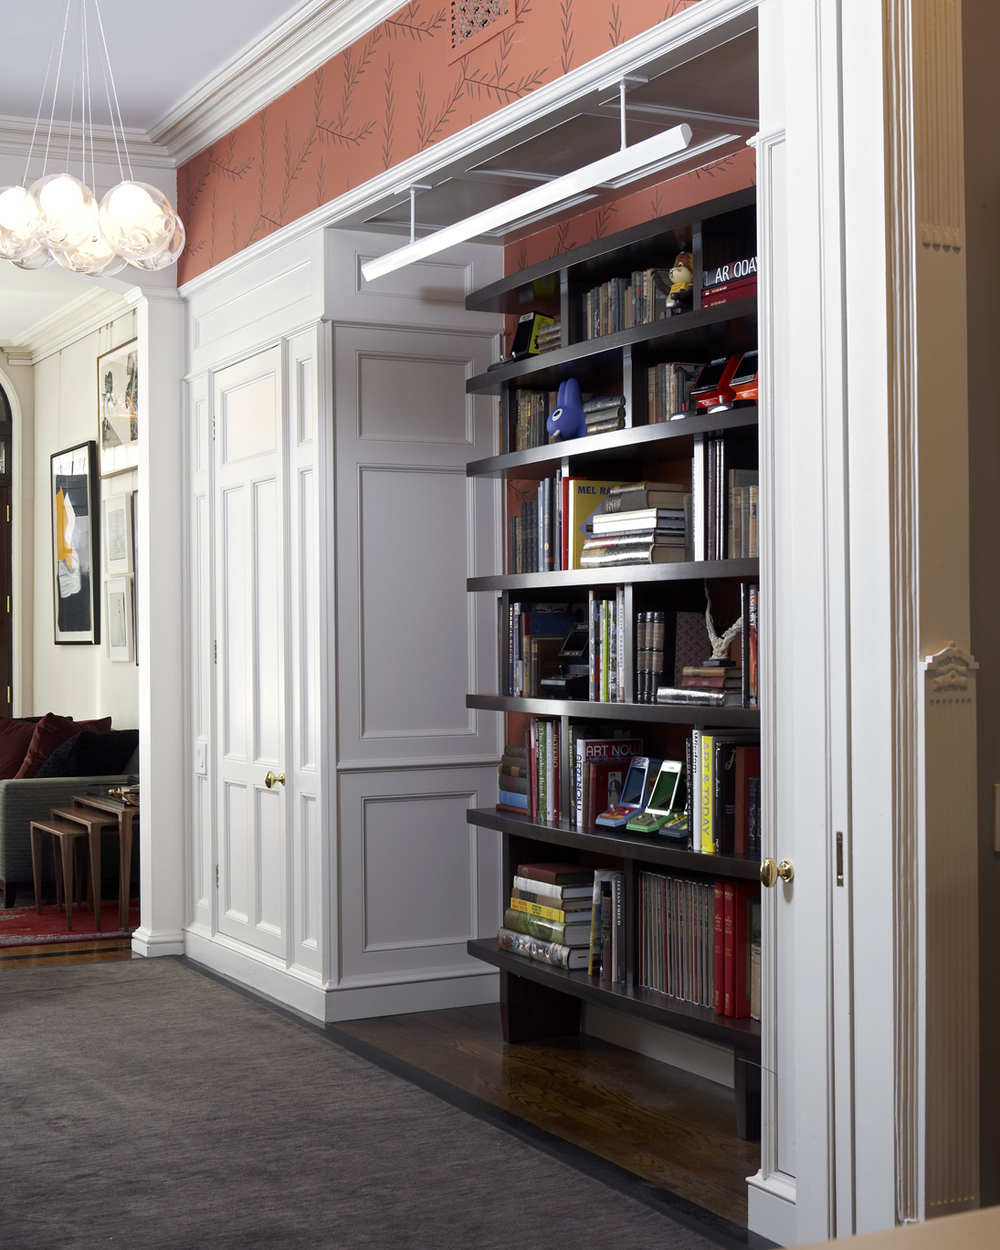 137w87-075844-BookCases3.jpg